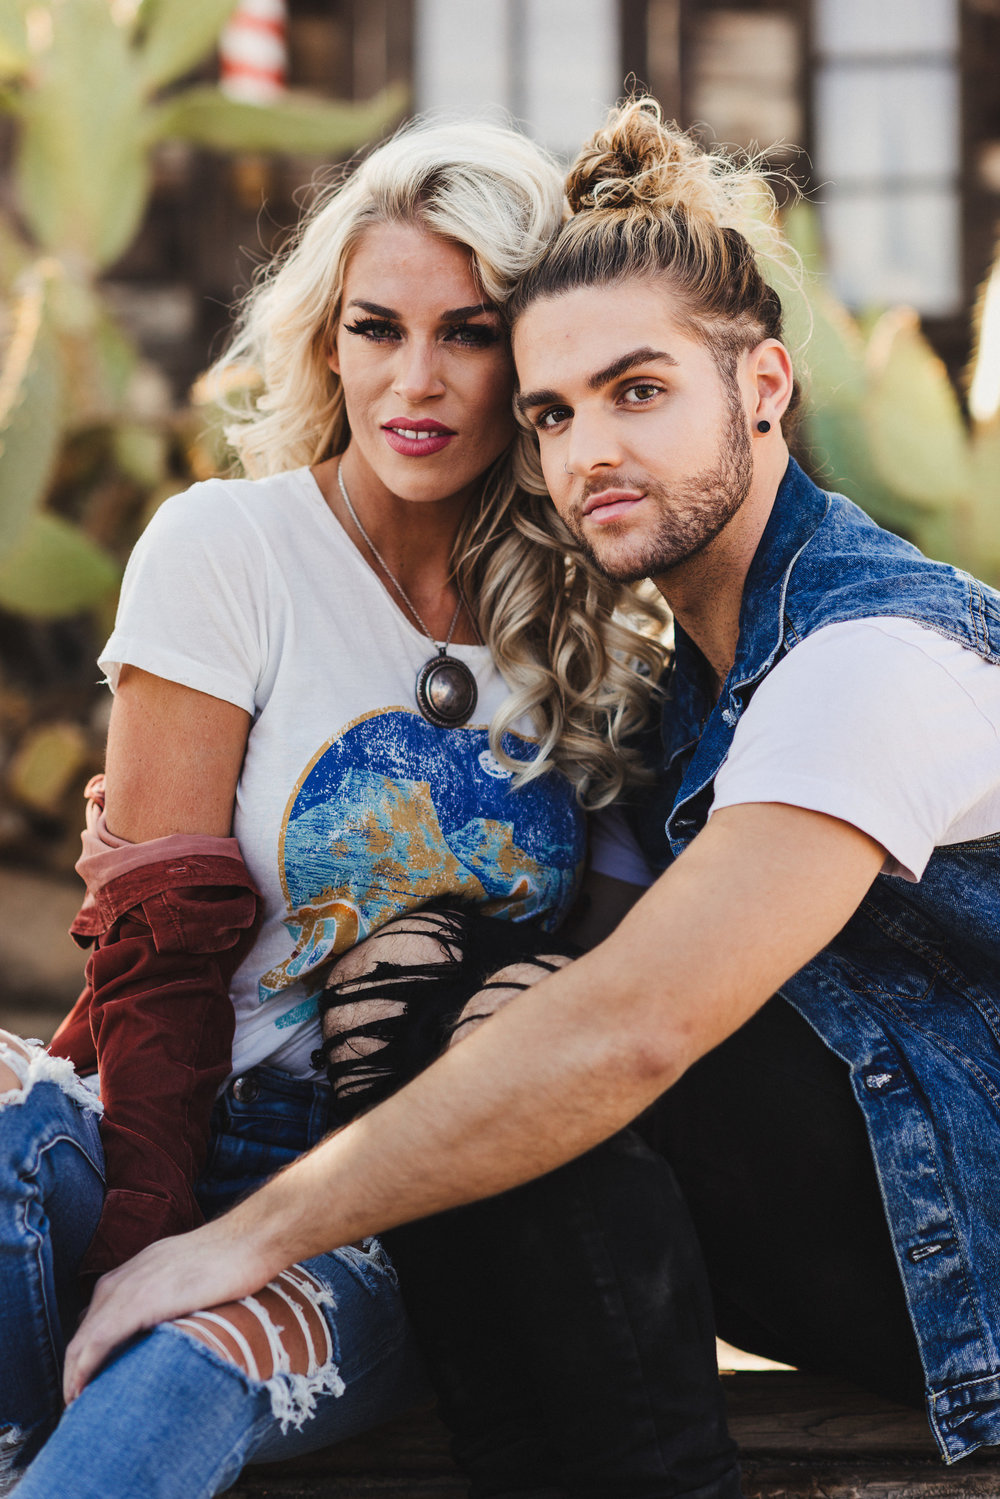 sKasey + Nick - Fashion-Couple's Session-149.jpg